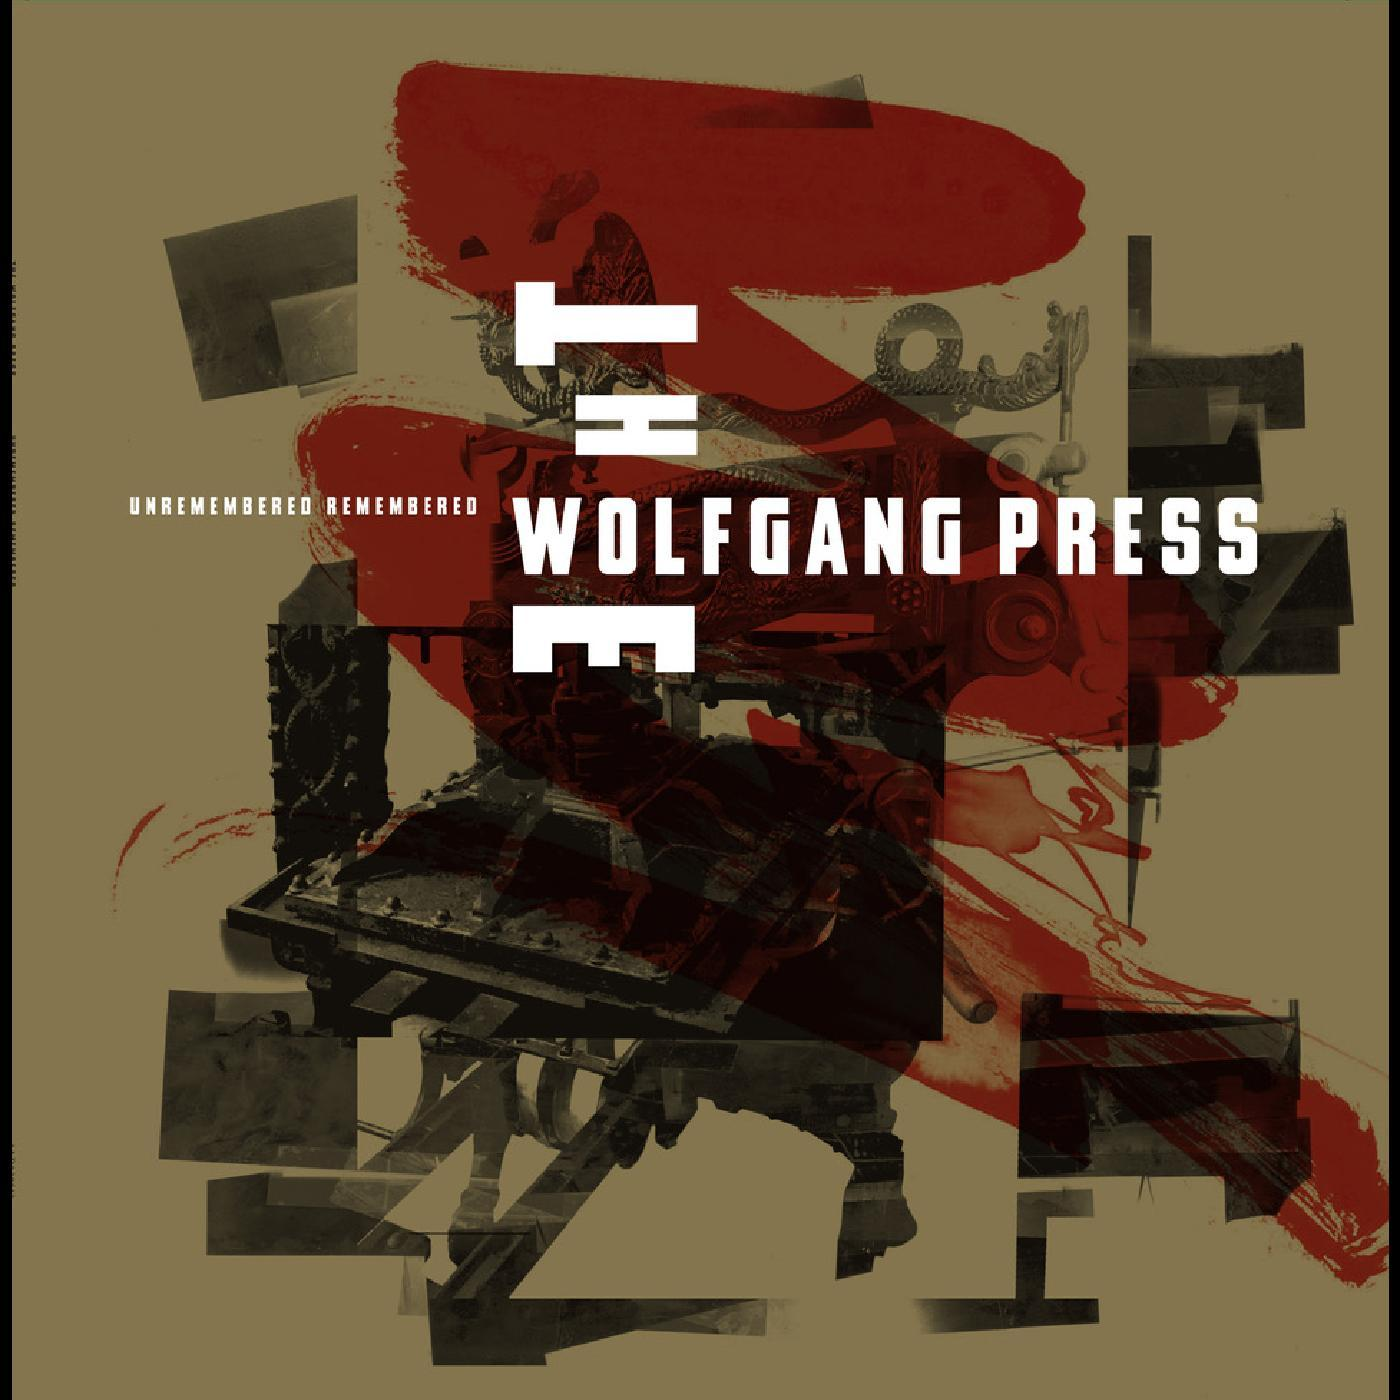 Wolfgang Press - Unremembered, Remembered [RSD Drops Aug 2020]